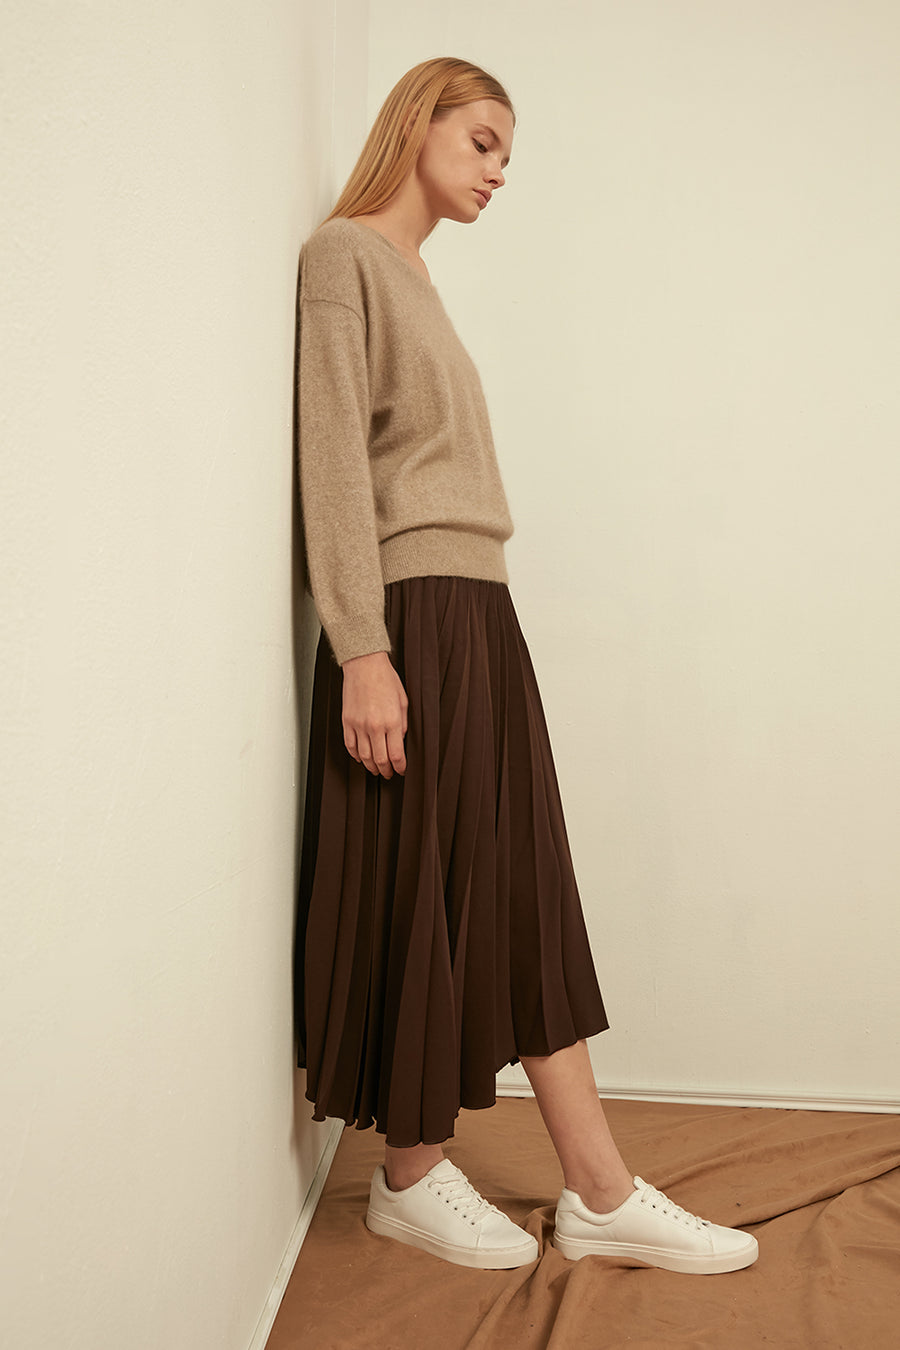 Elasticated midi skirt - Zelle Studio